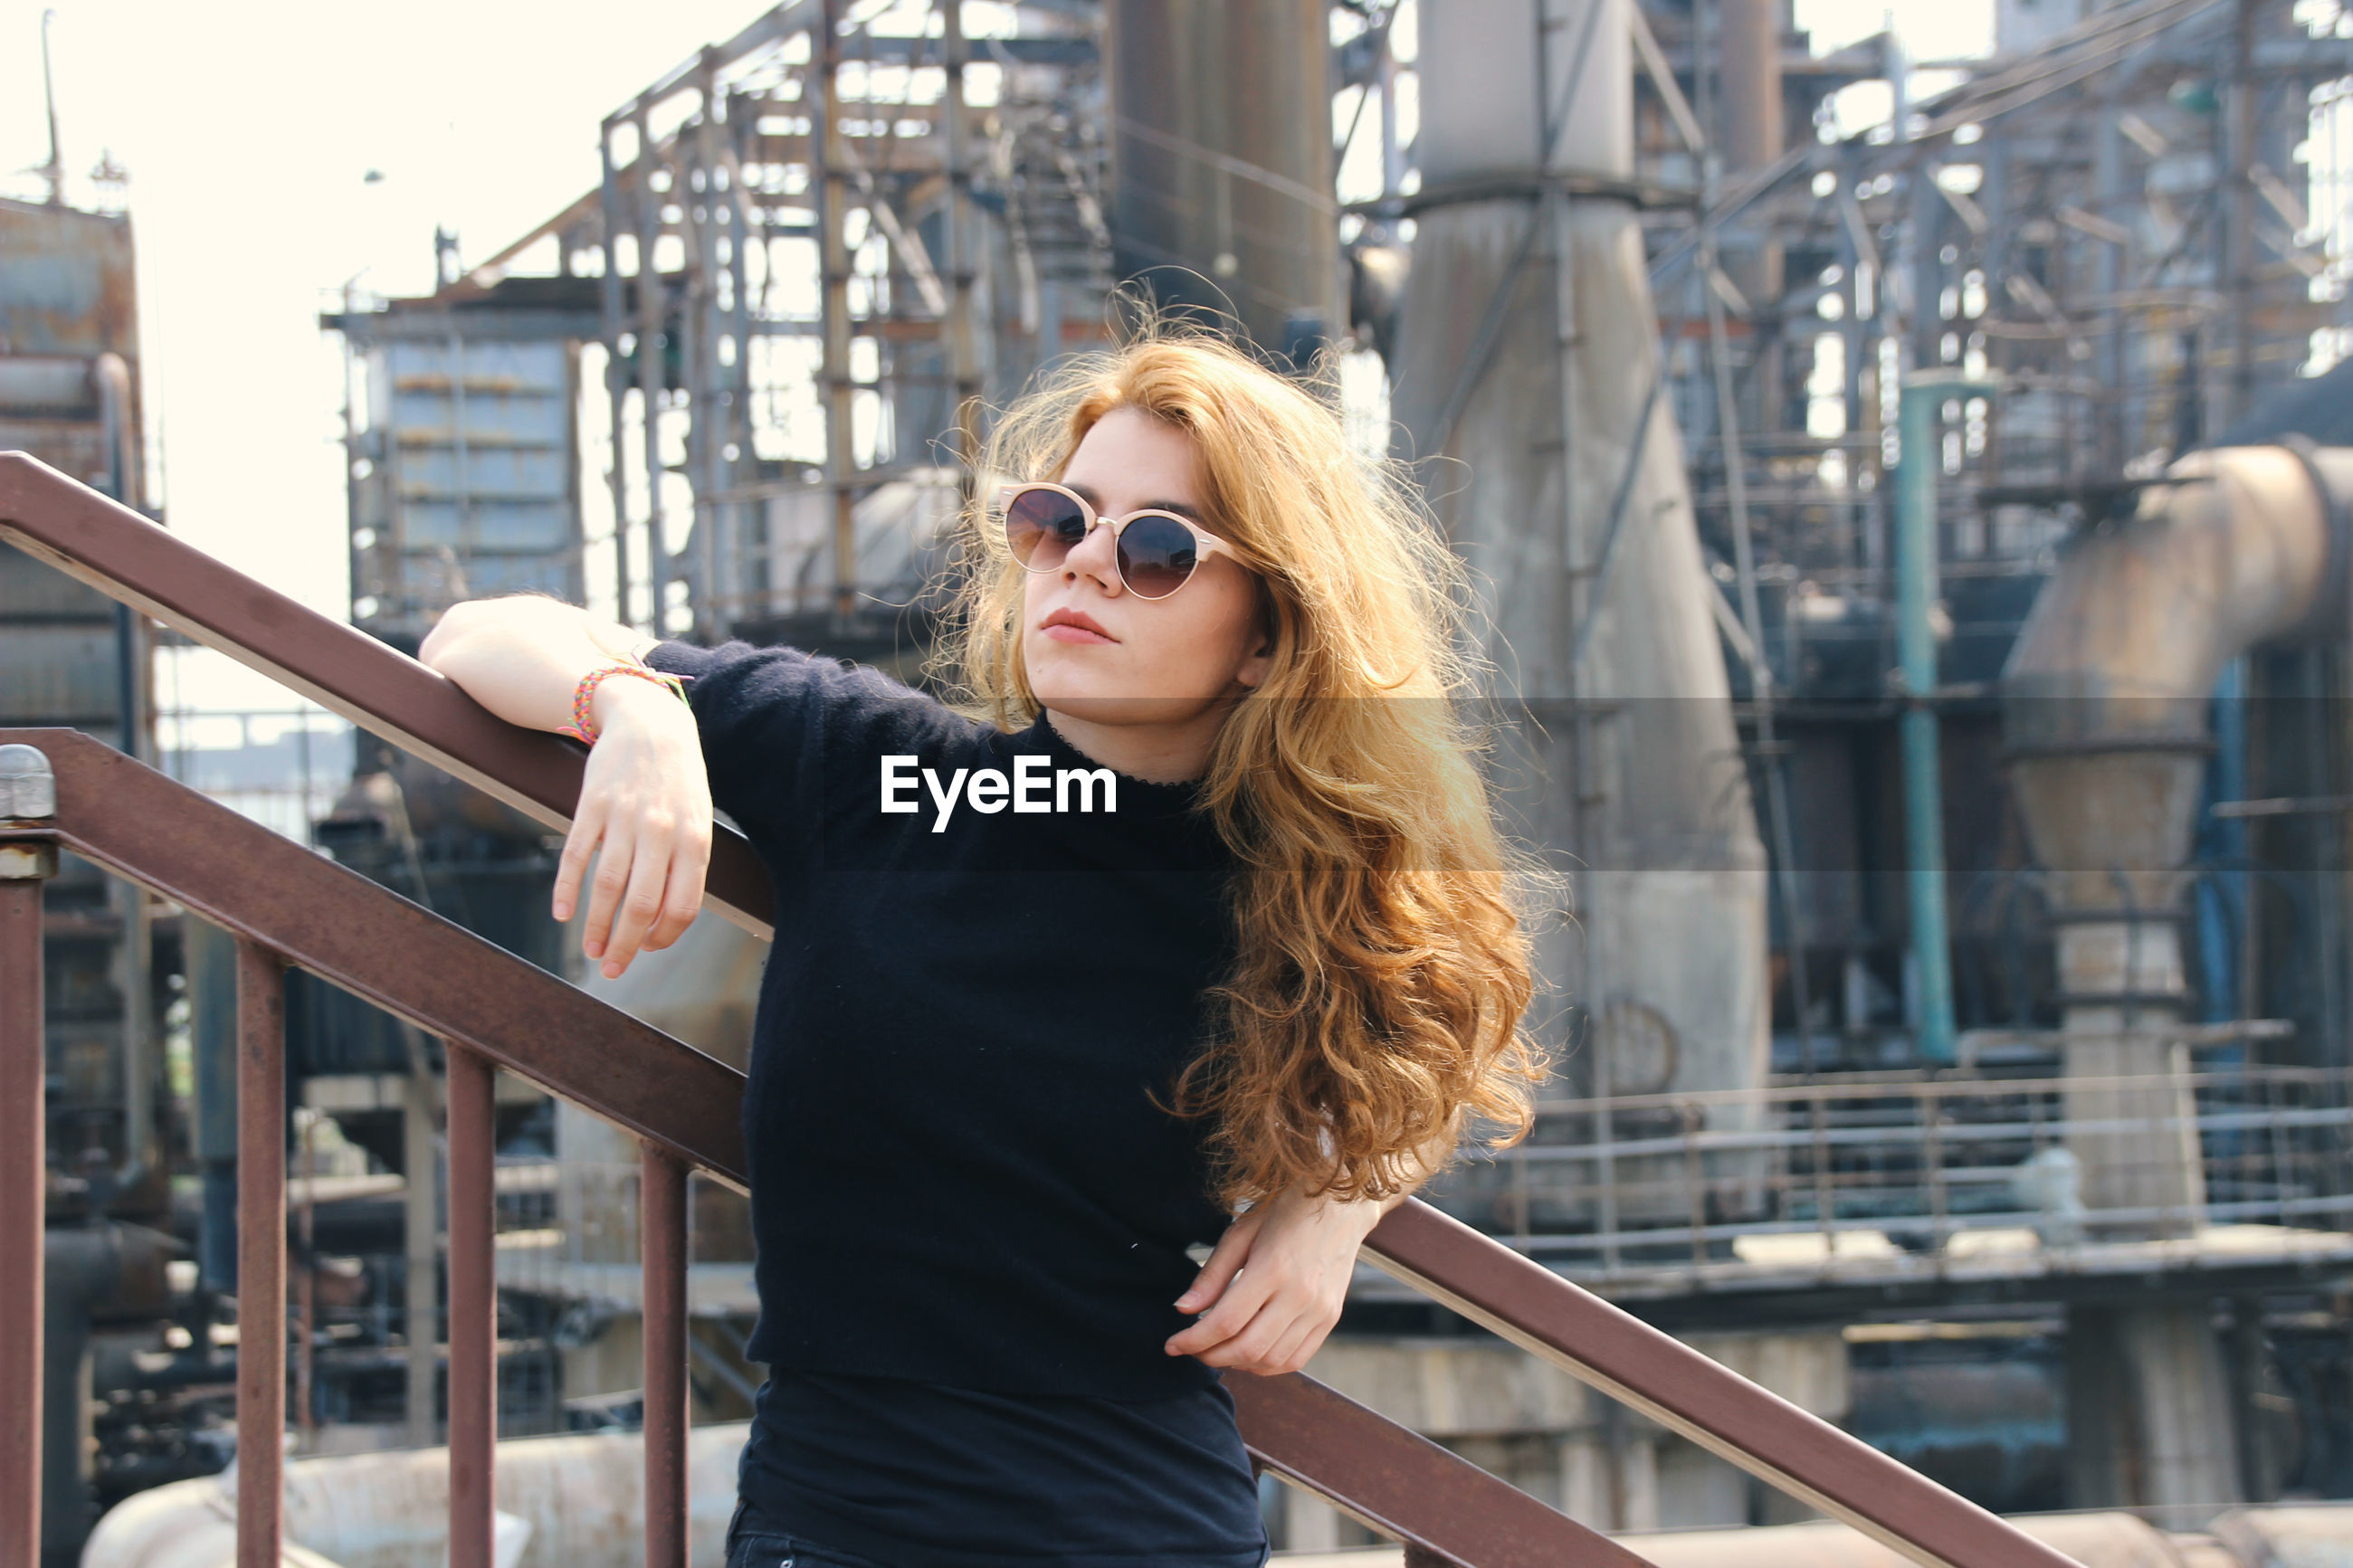 Woman in sunglasses standing against industry